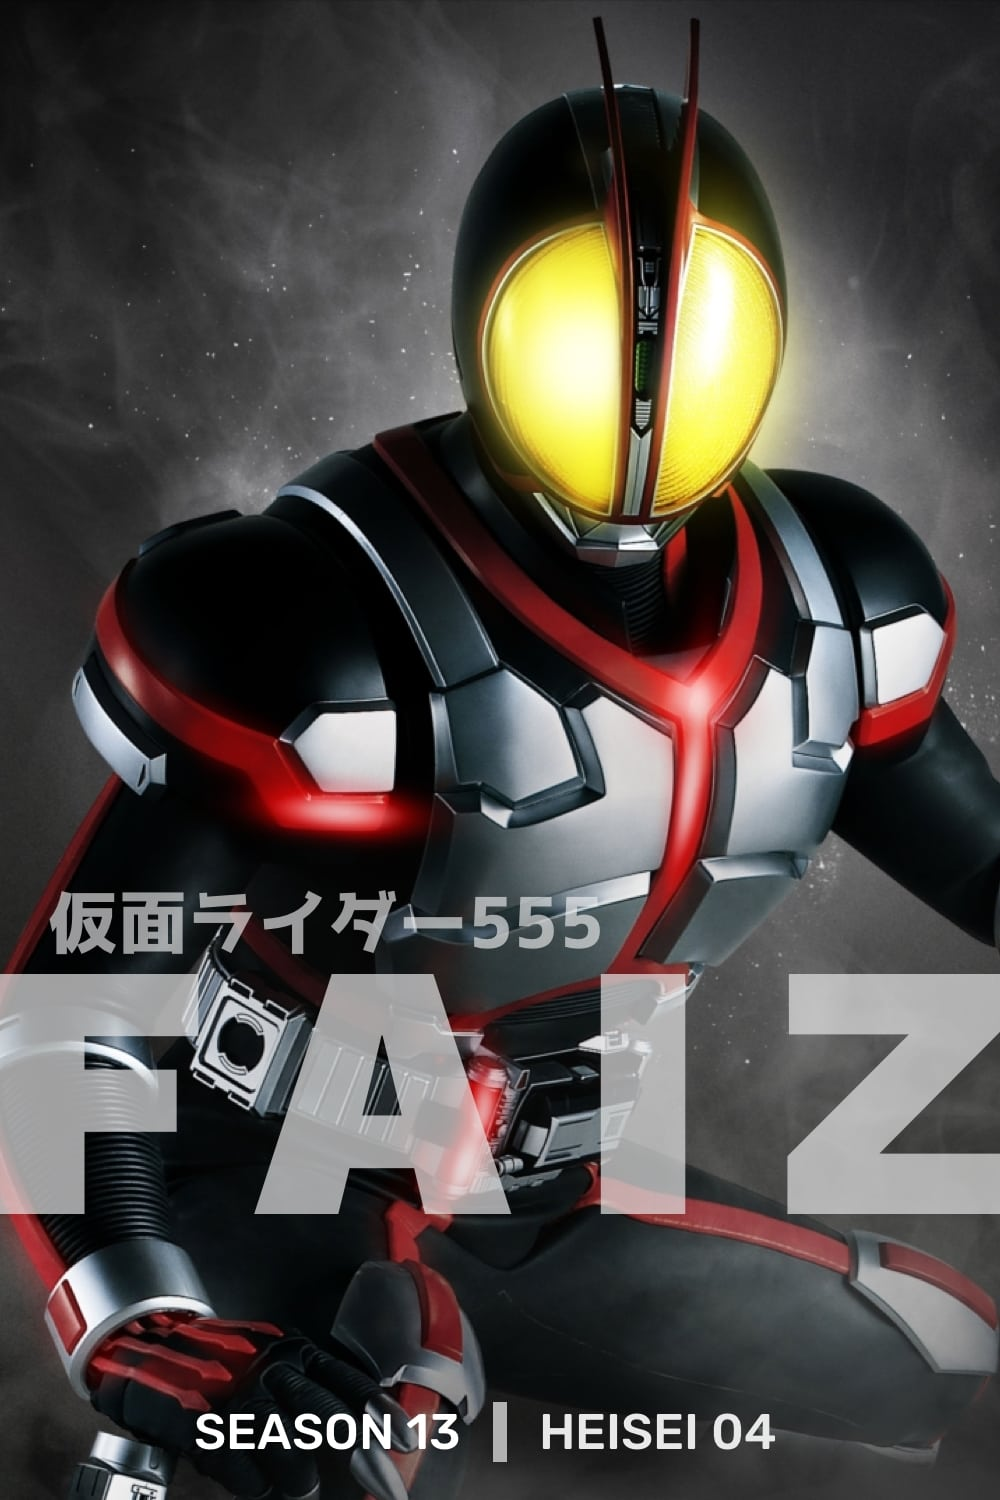 Kamen Rider - Season 21 Episode 35 : Dreams, Brother, Birth's Secret Season 13